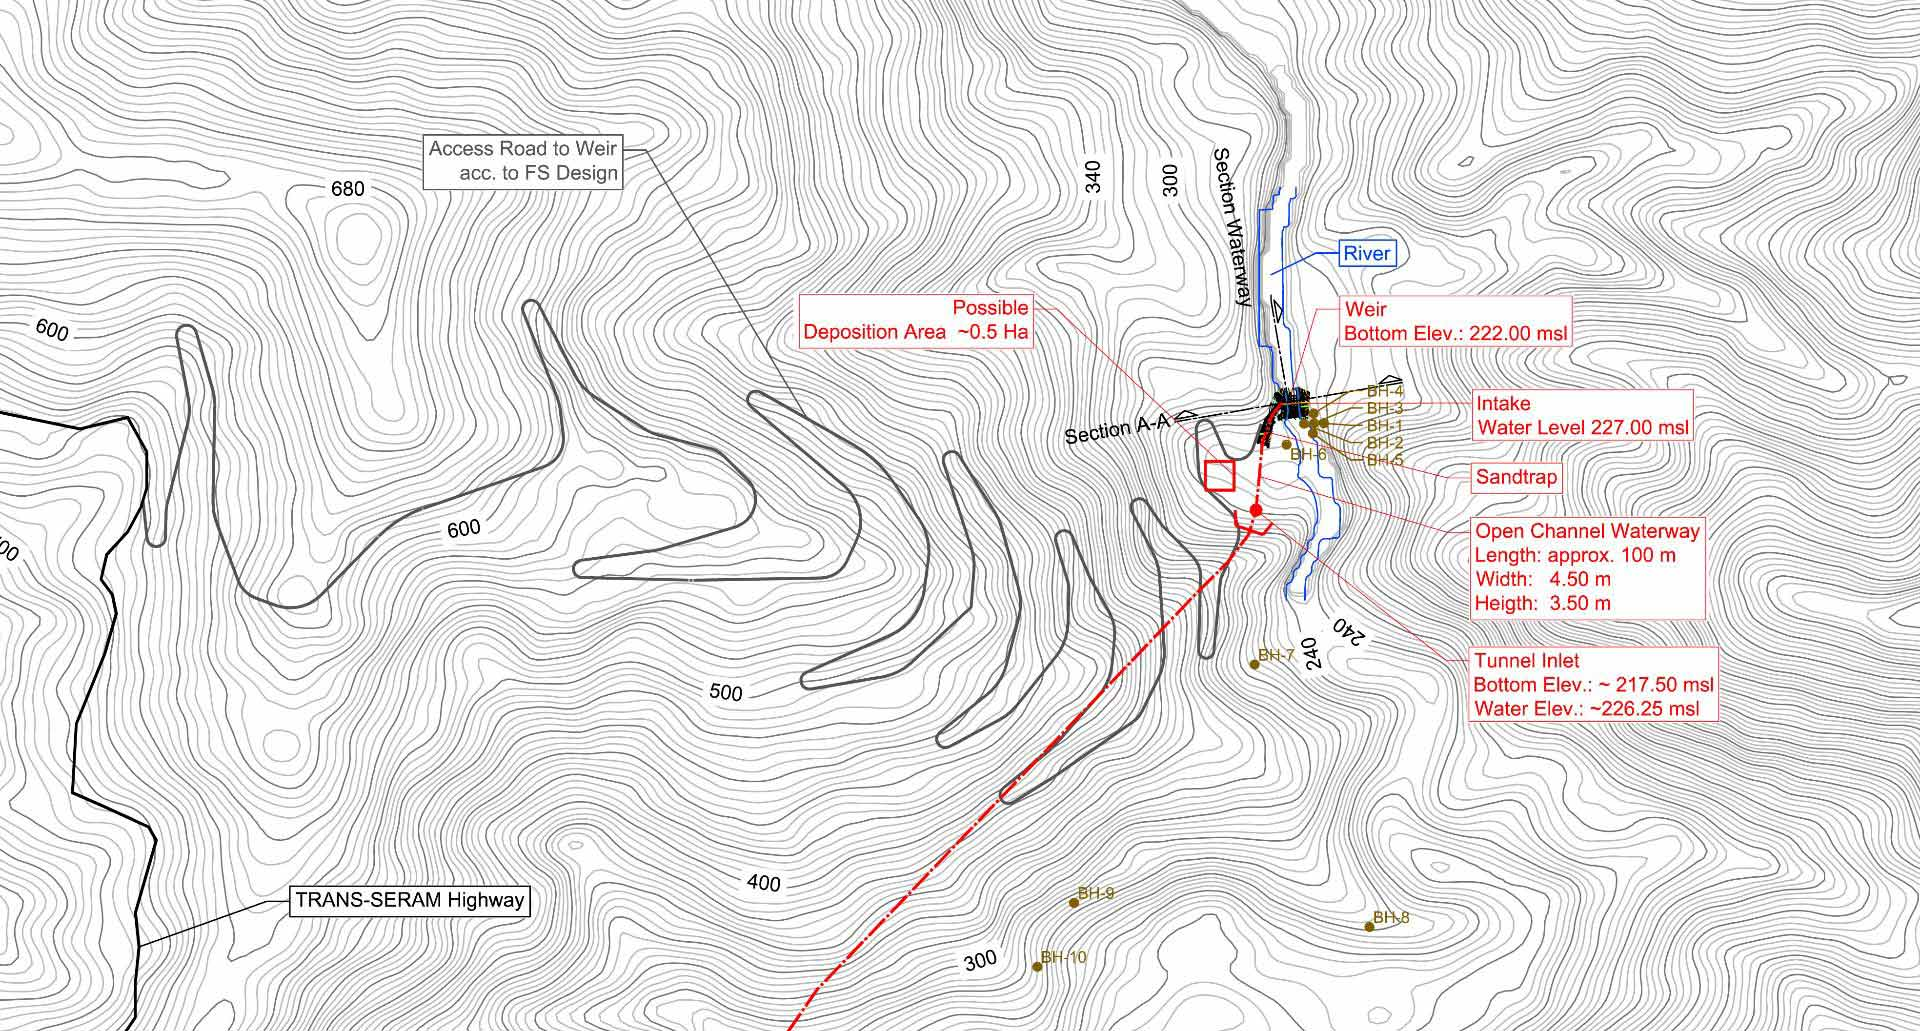 Ground survey topographical map - Indonesia Worldem case study